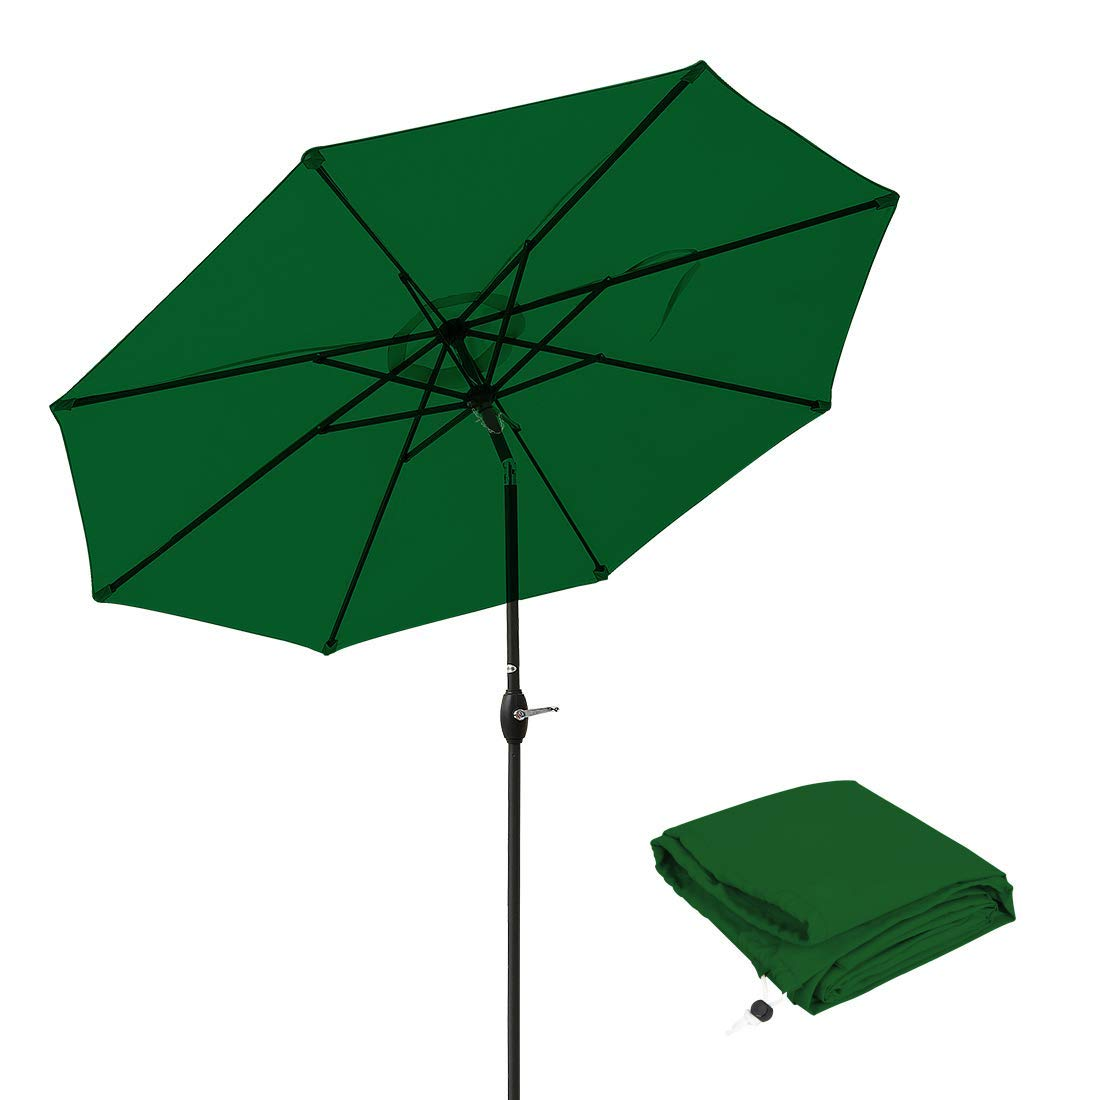 Patio Umbrella 9 Ft Aluminum Outdoor Table Market Umbrellas With Push Button Tilt and Crank, Safety Bolt,8 Ribs (Apple Green)